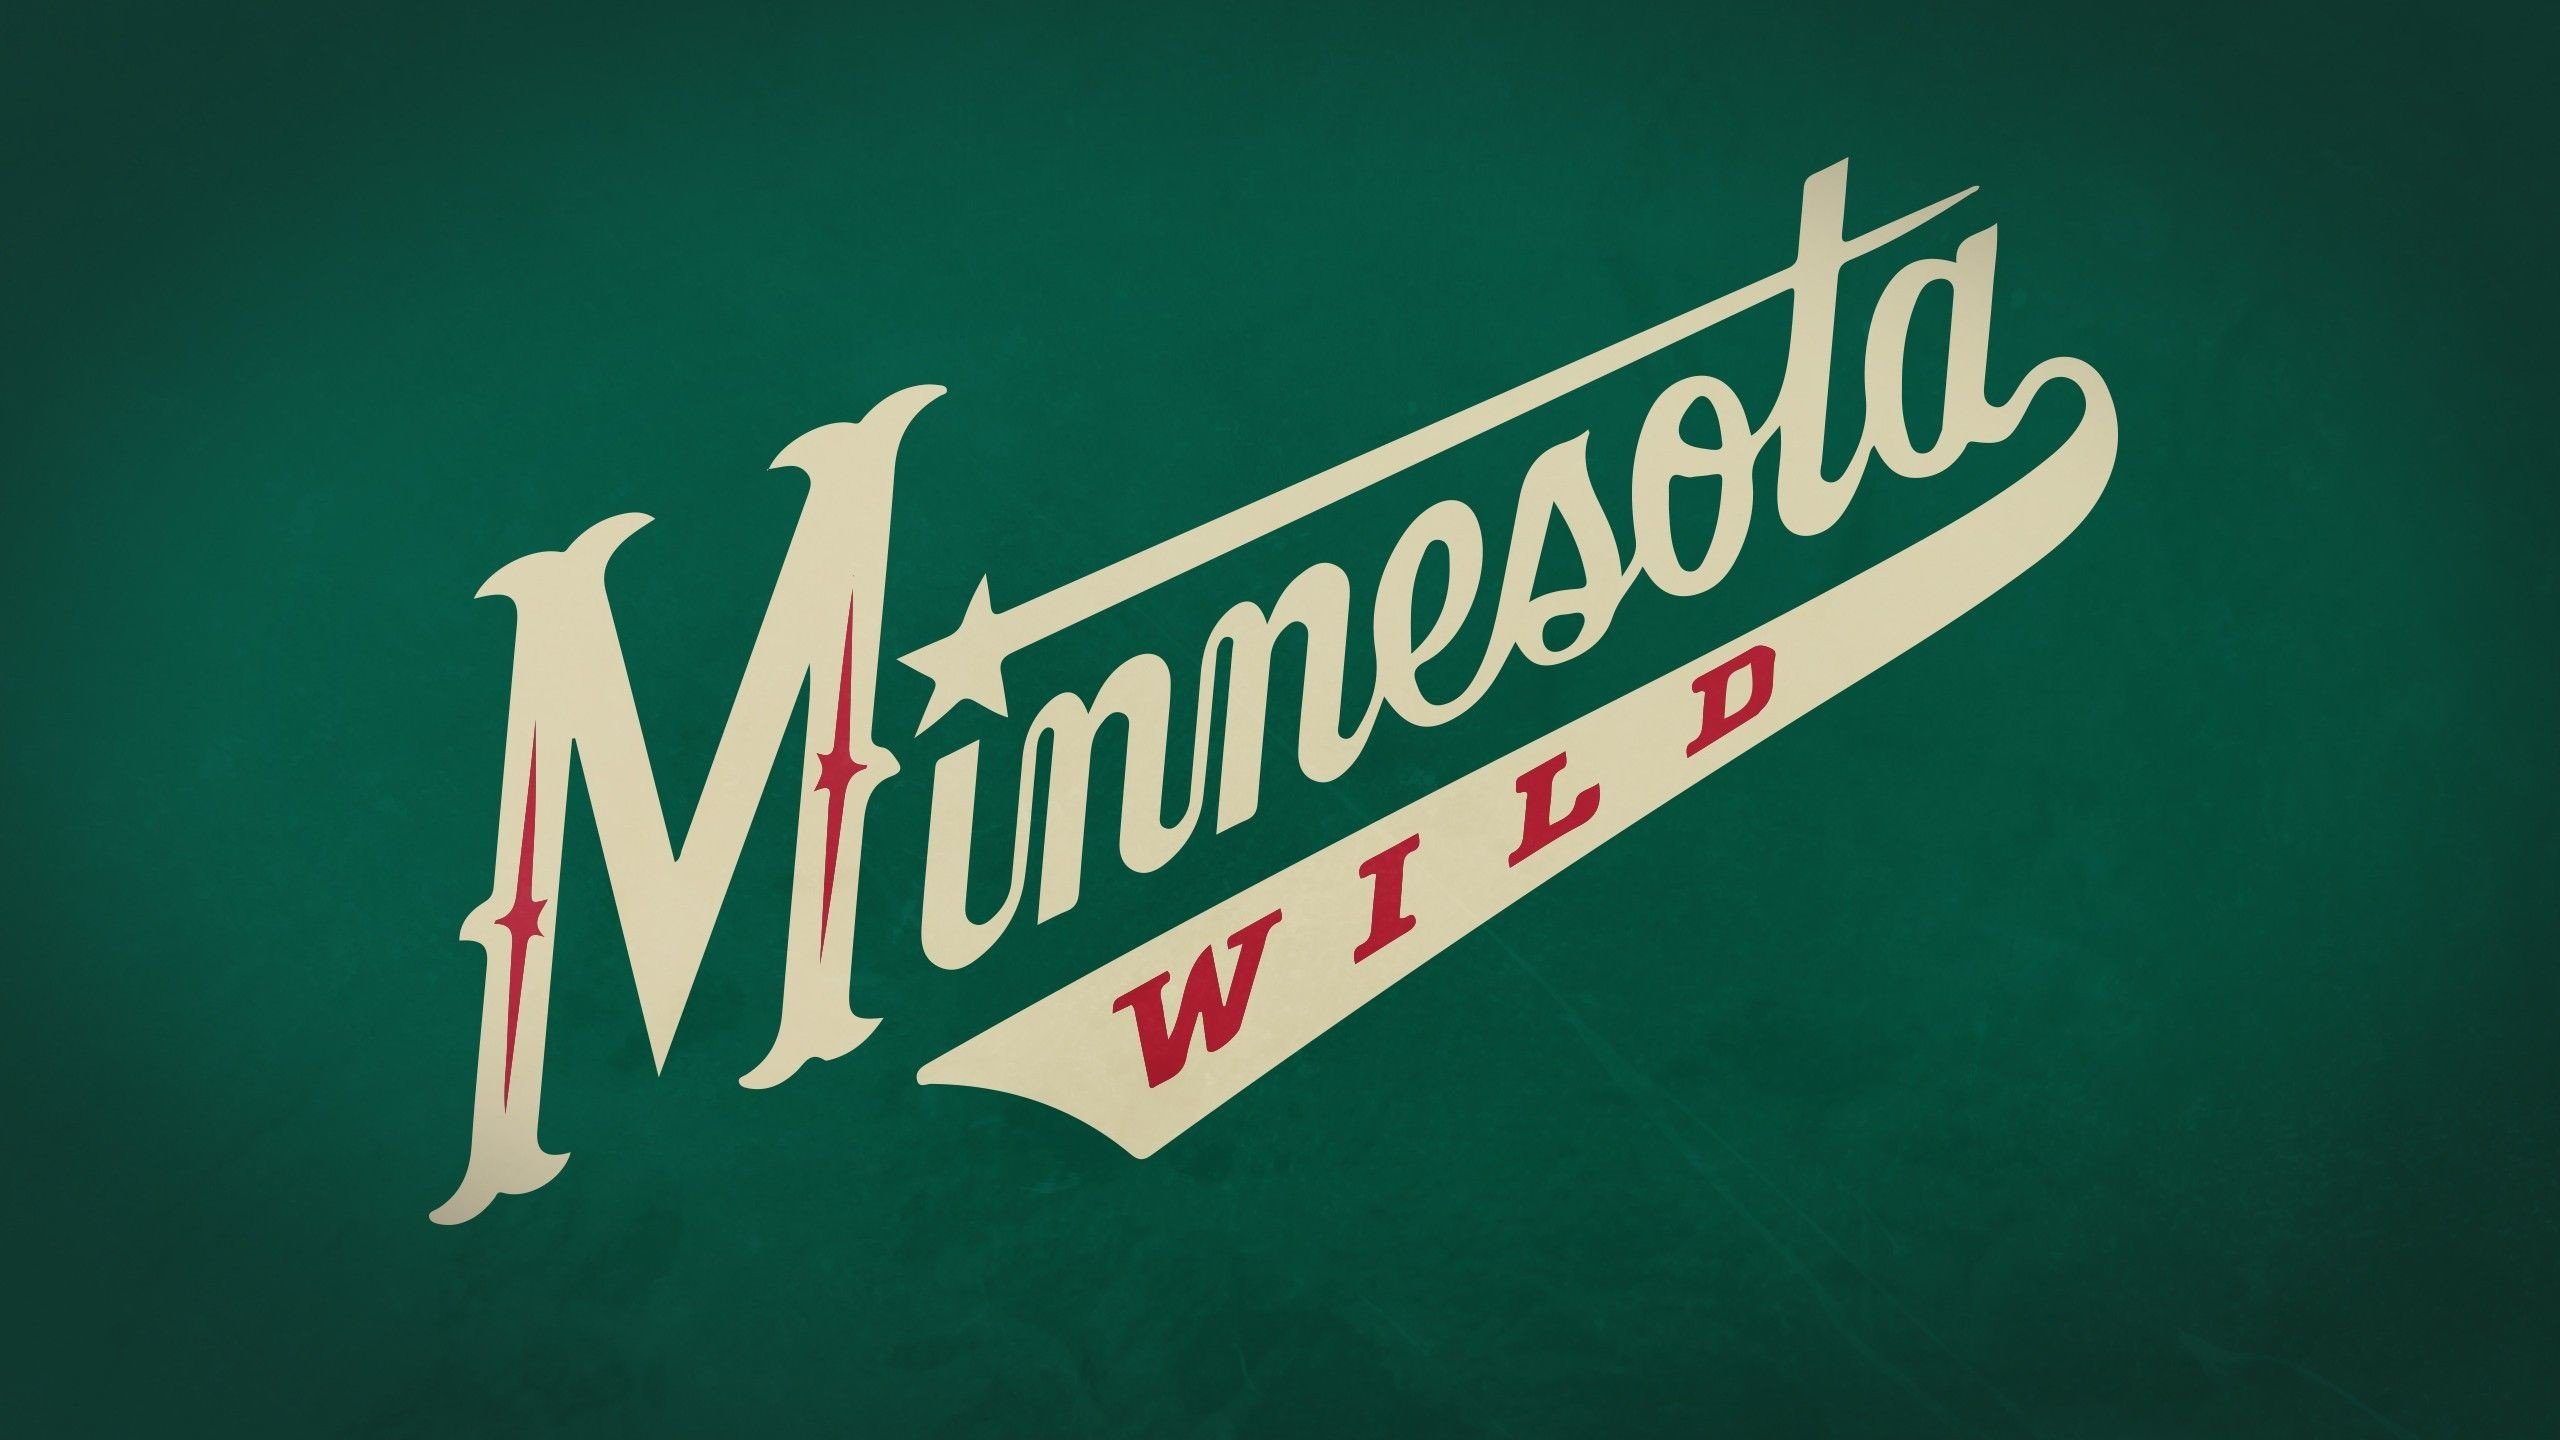 2560x1440 wallpaper.wiki-Minnesota-Wild-Wallpapers-PIC-WPD001775